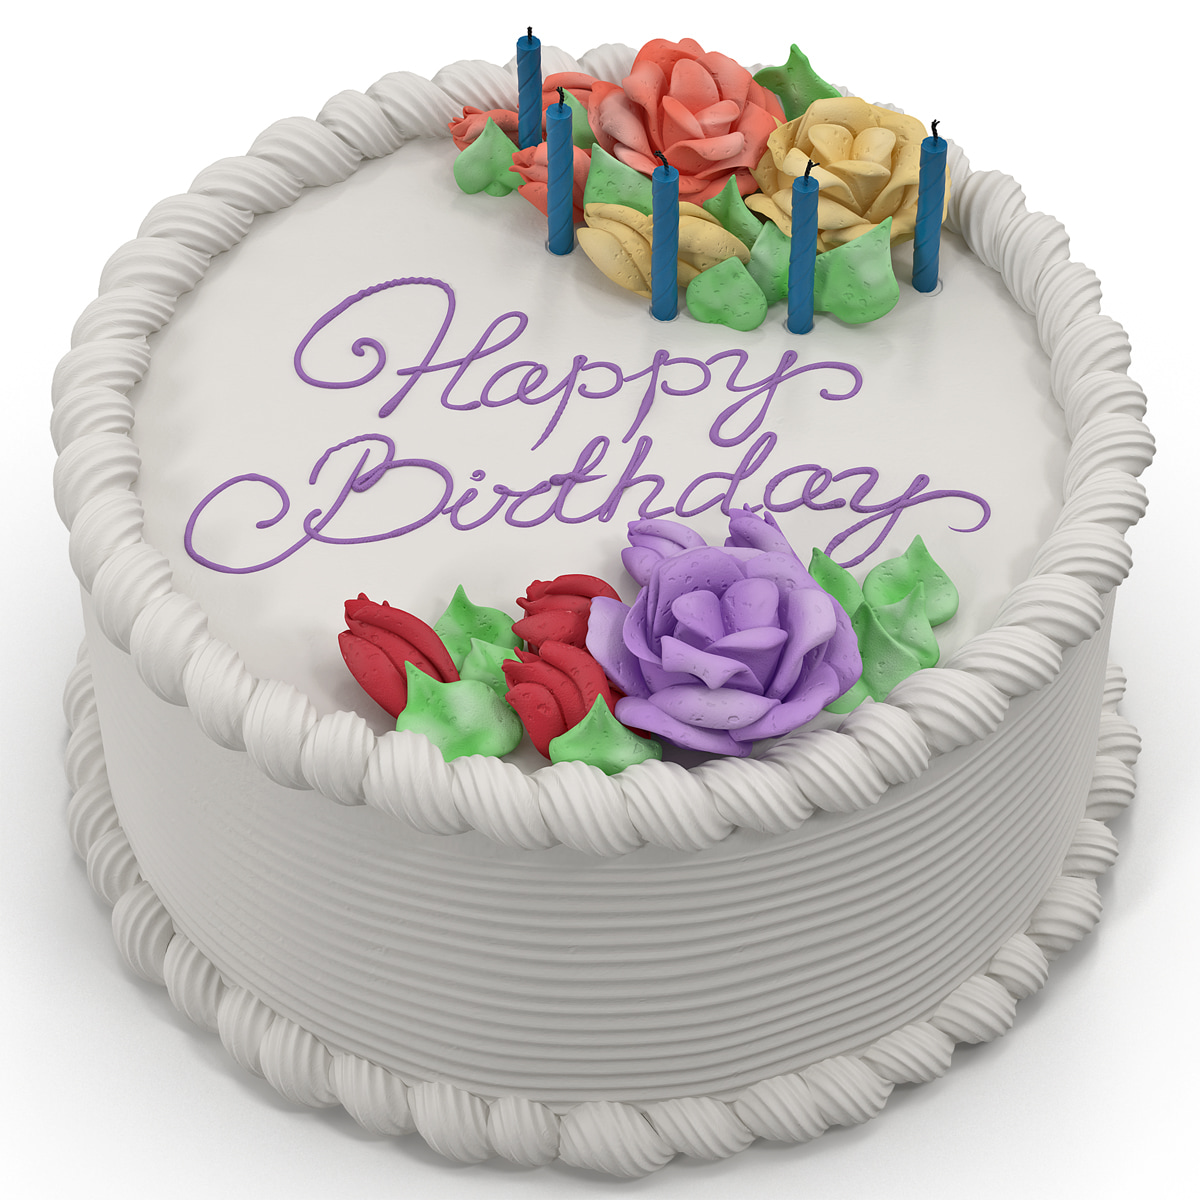 Birthday Pastry Cake Images Download : 3d model of birthday cake 4